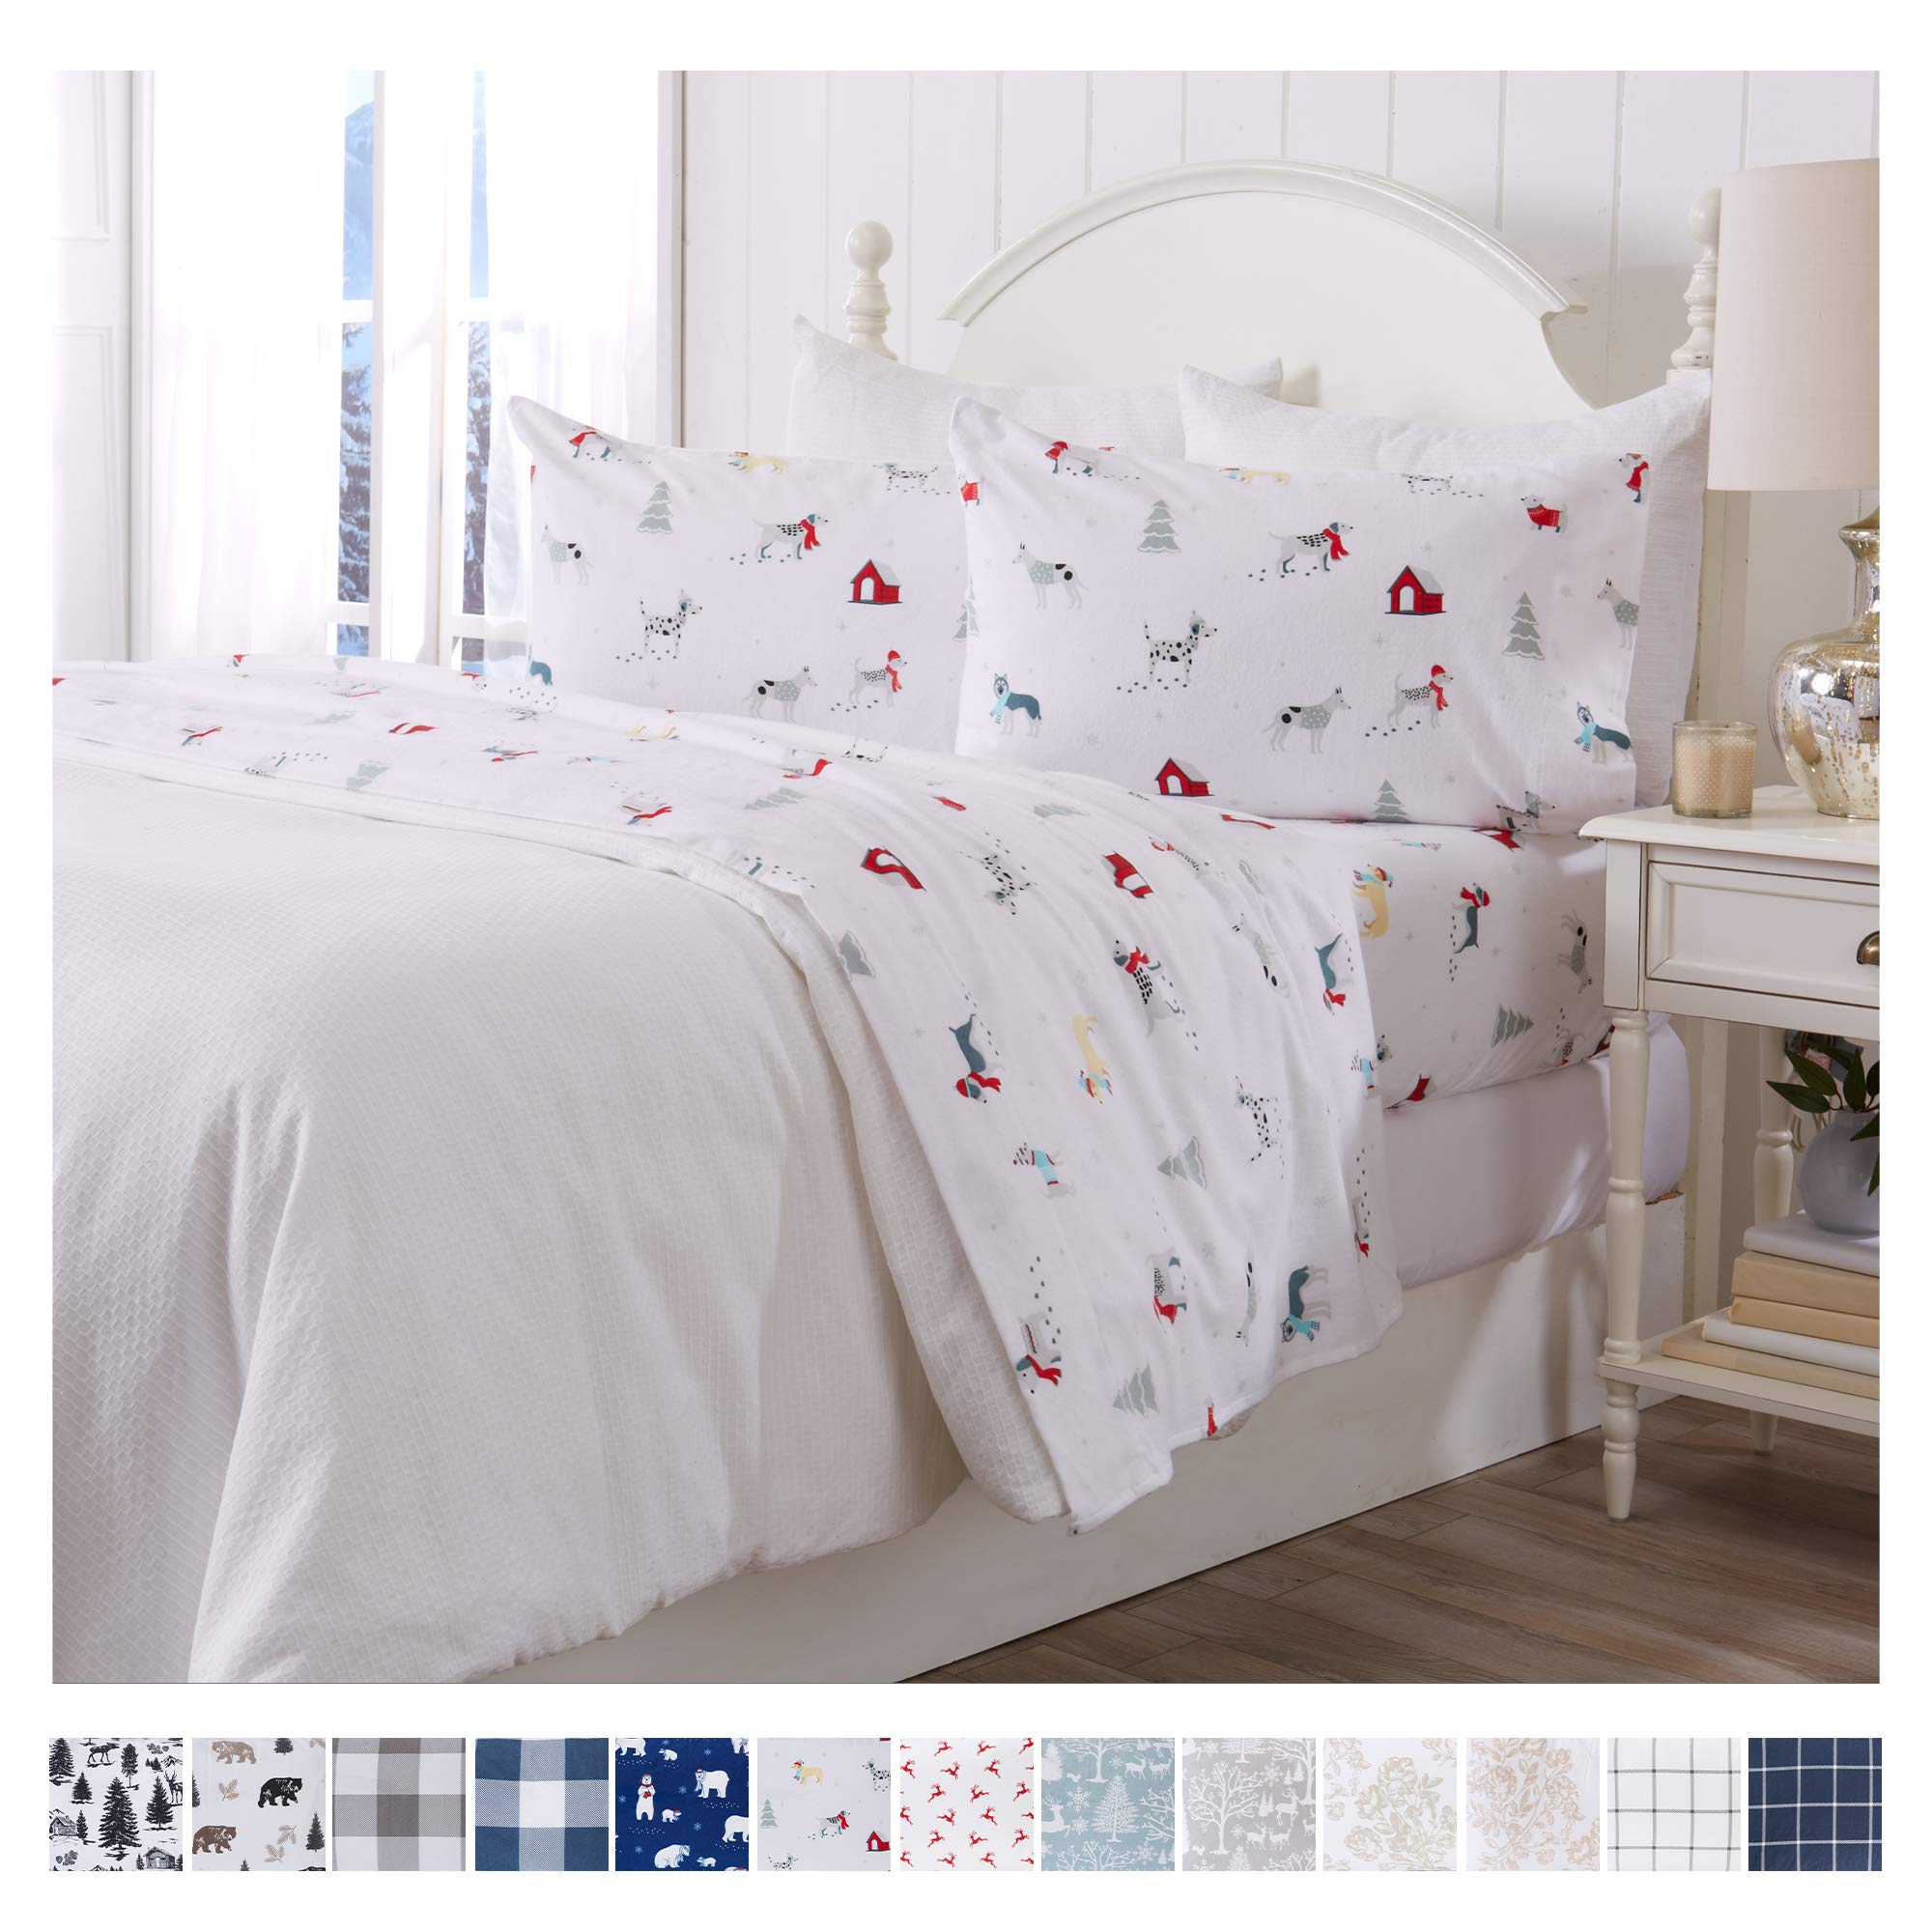 Great Bay Home Extra Soft Printed 100 Turkish Cotton Flannel Sheet Set Warm Cozy Luxury Winter Bed Sheets Belle Collection King Pups In The Snow Buy Online In Canada At Desertcart